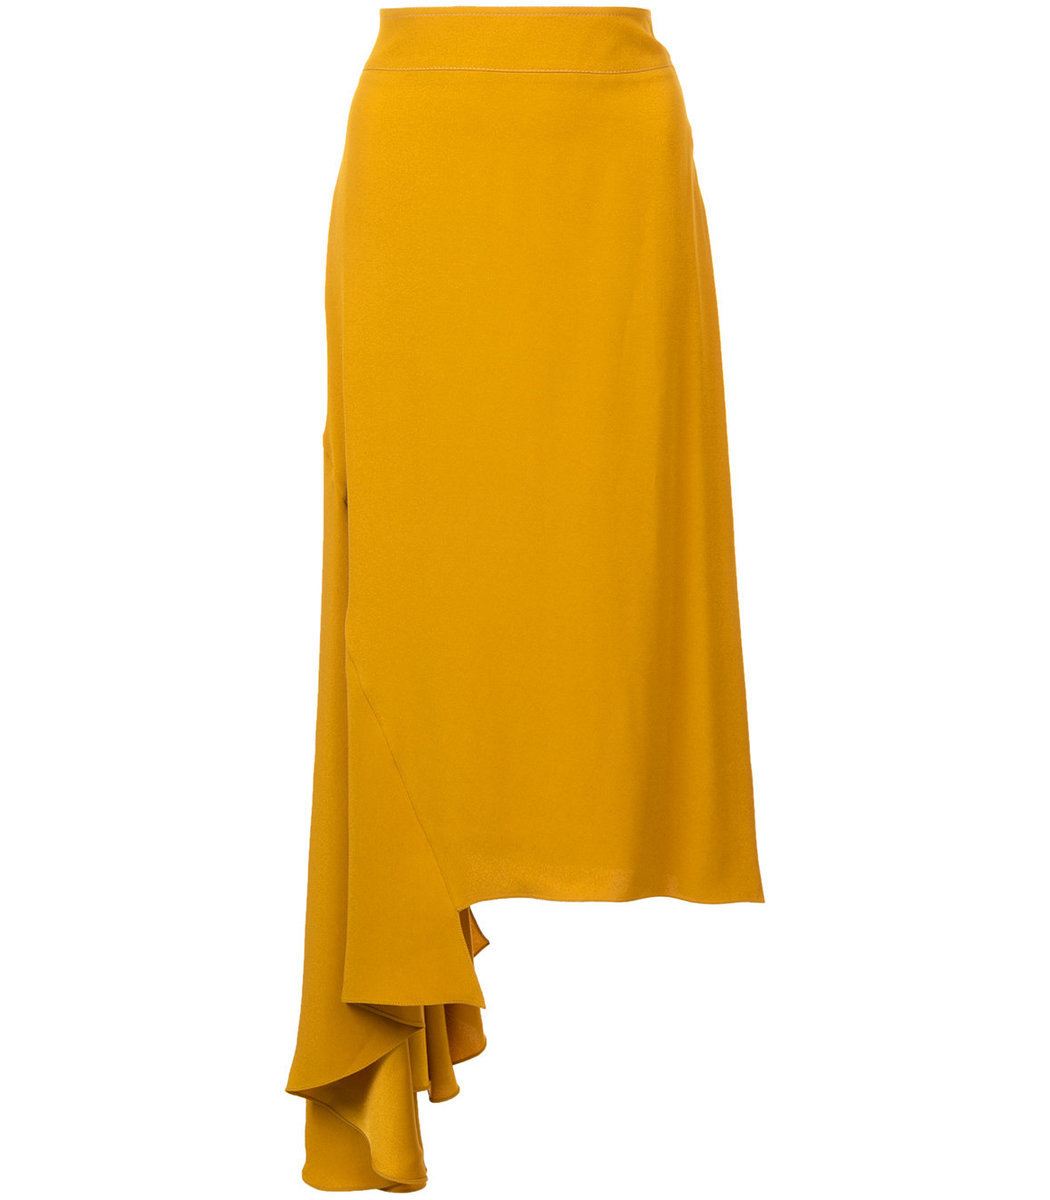 MARNI Yellow Asymmetric Ruffled Skirt